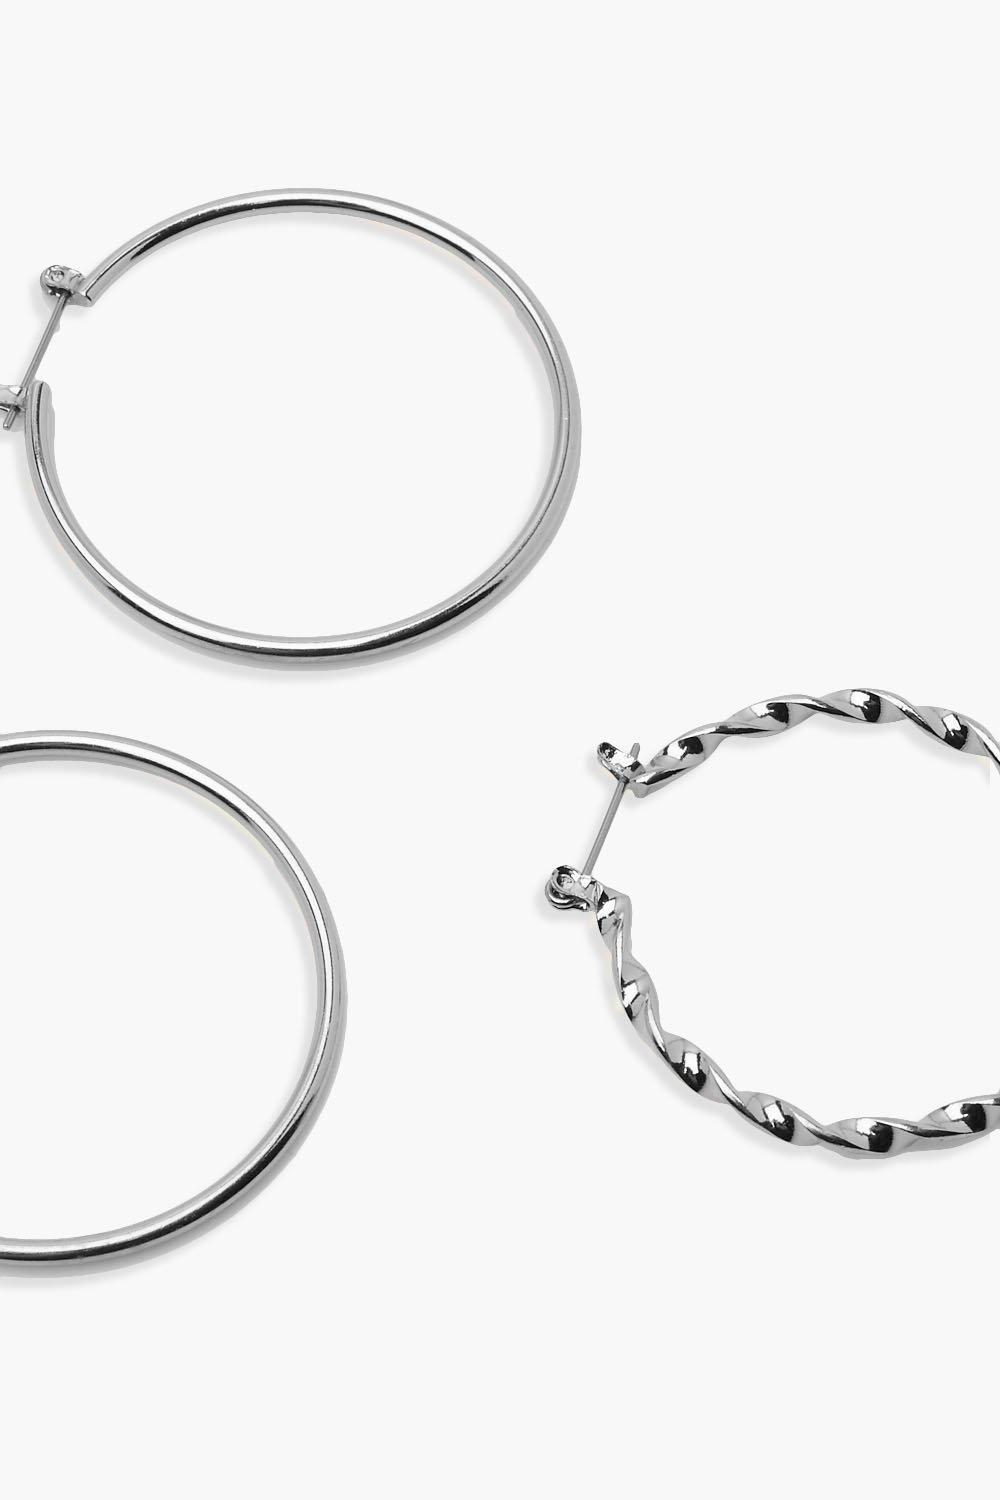 Boohoo Abbie Twisted And Plain Mixed Hoop 3 Pack in Silver (Metallic)